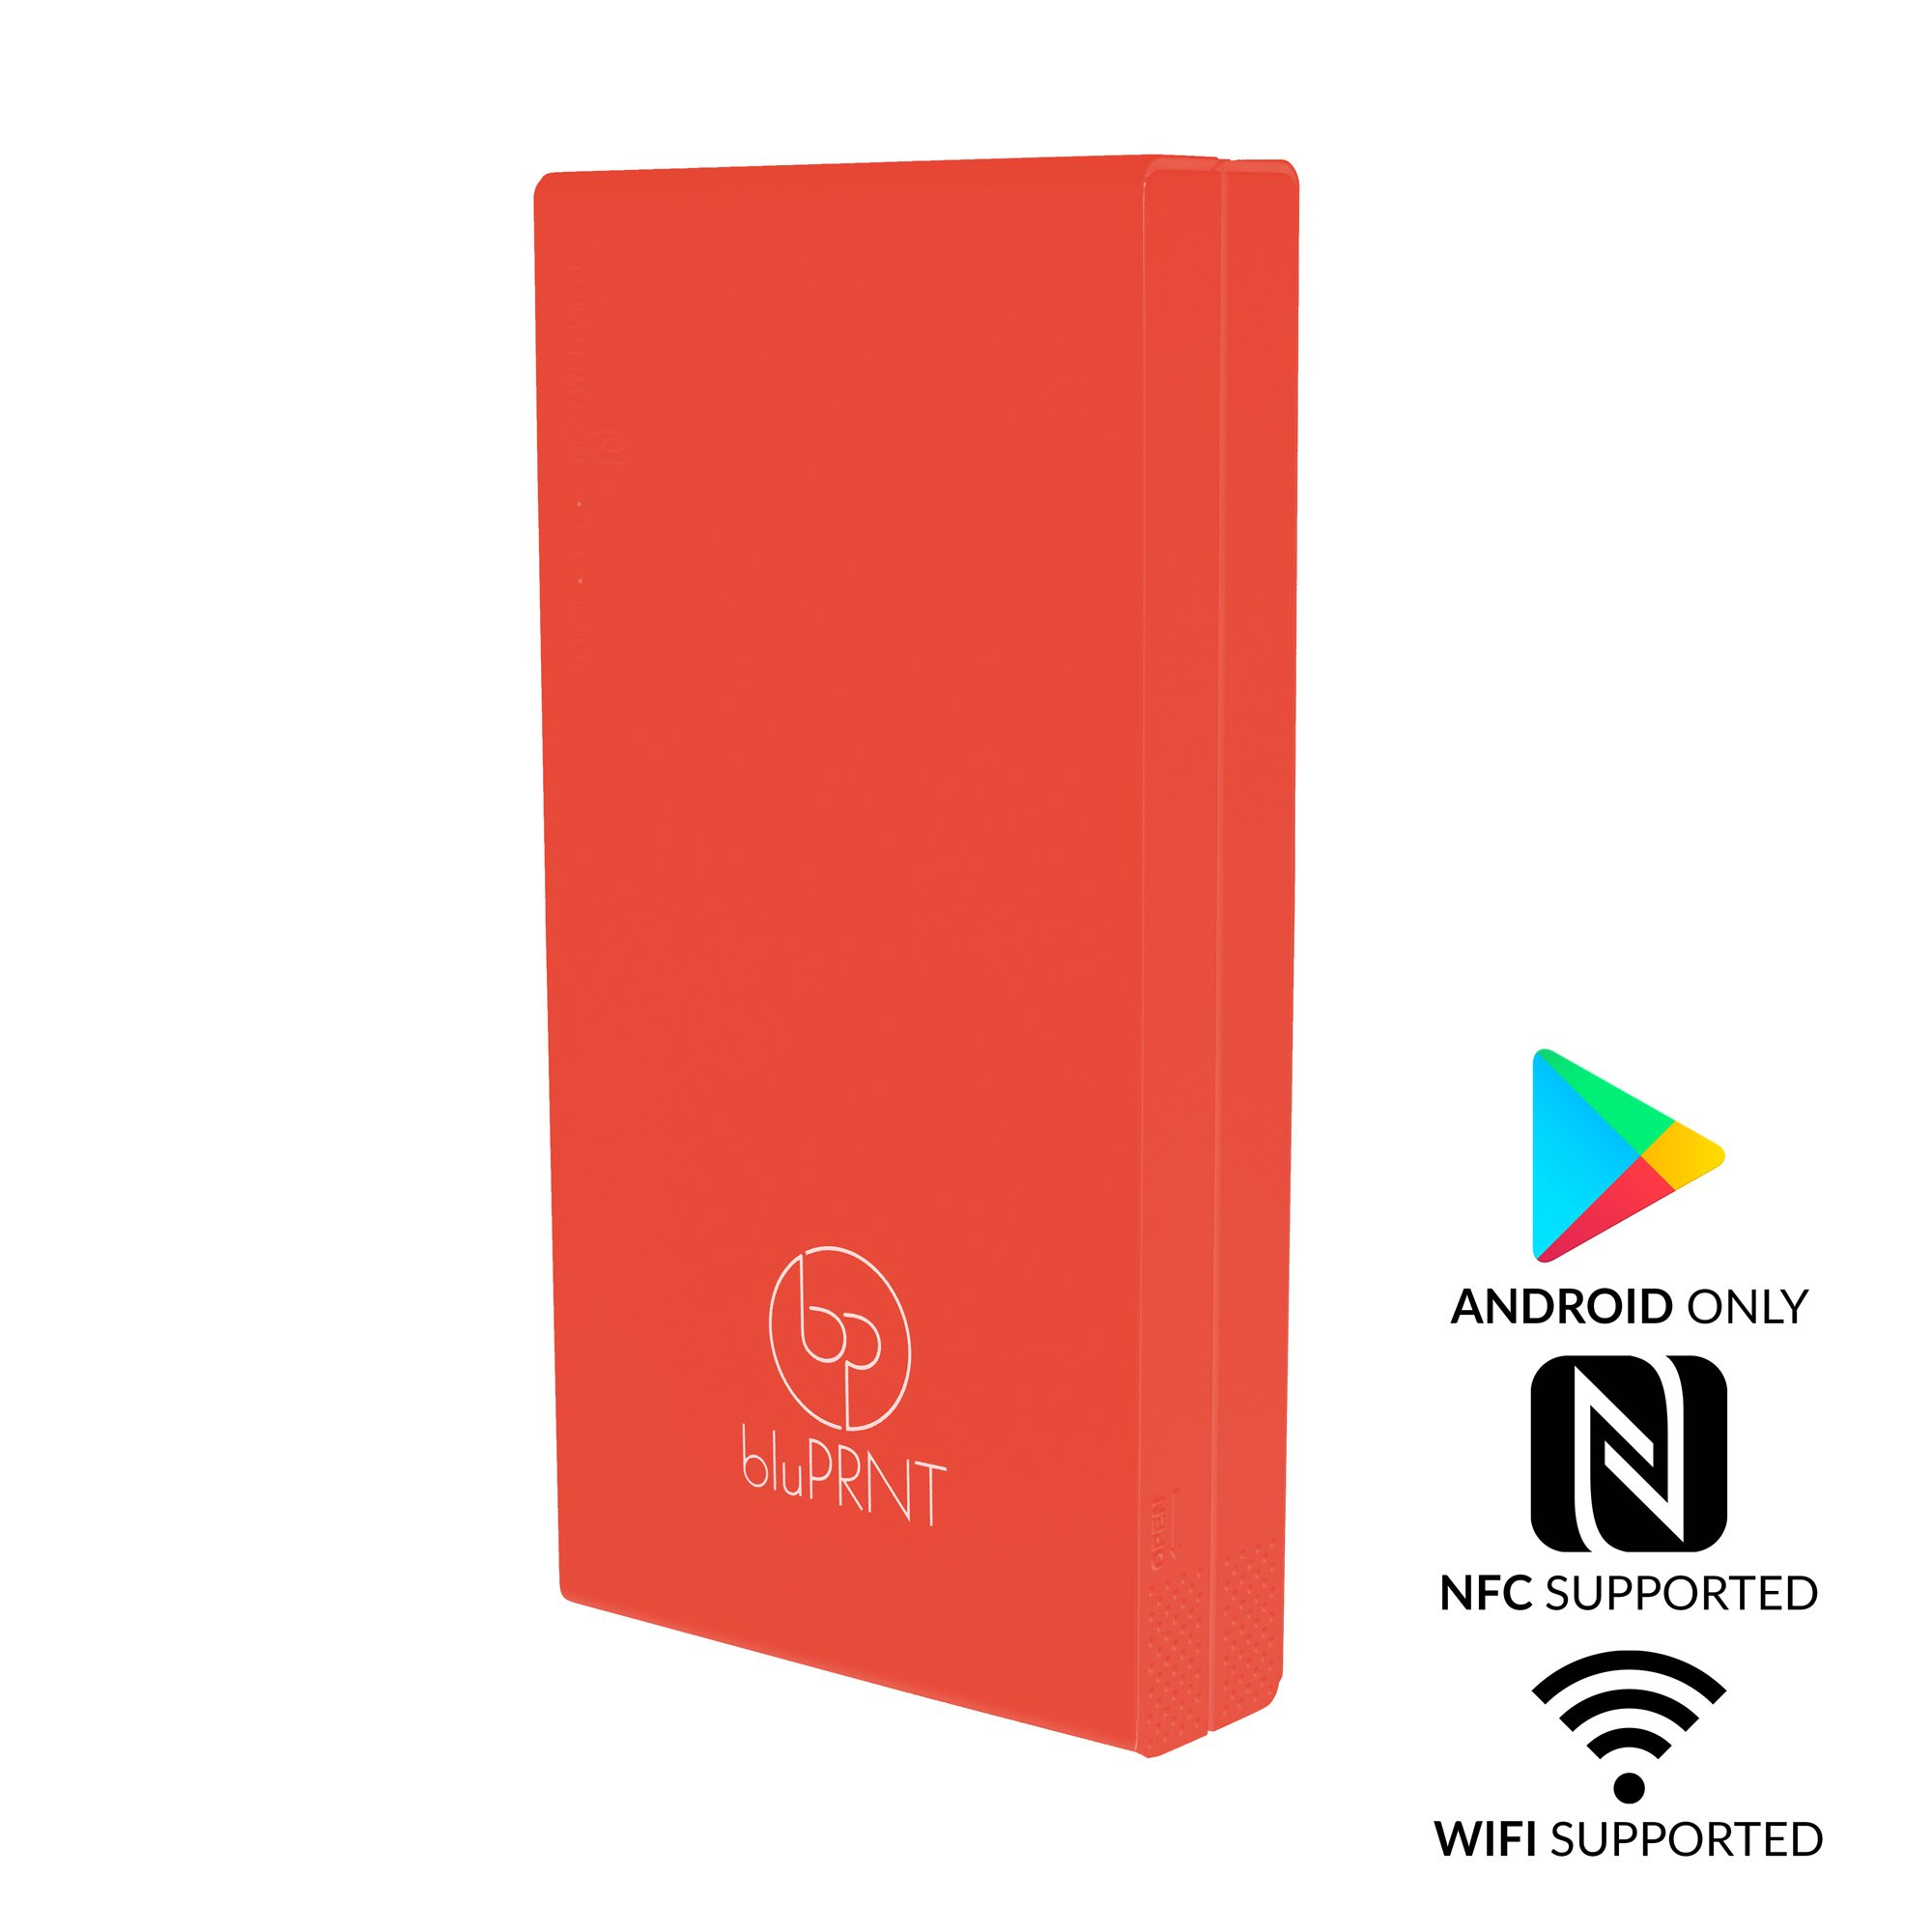 bluPRNT Instant Portable Printer for Smartphone Social Media Photos With WiFi & NFC, Compatible With only Android - Red by BluPrnt (Image #2)